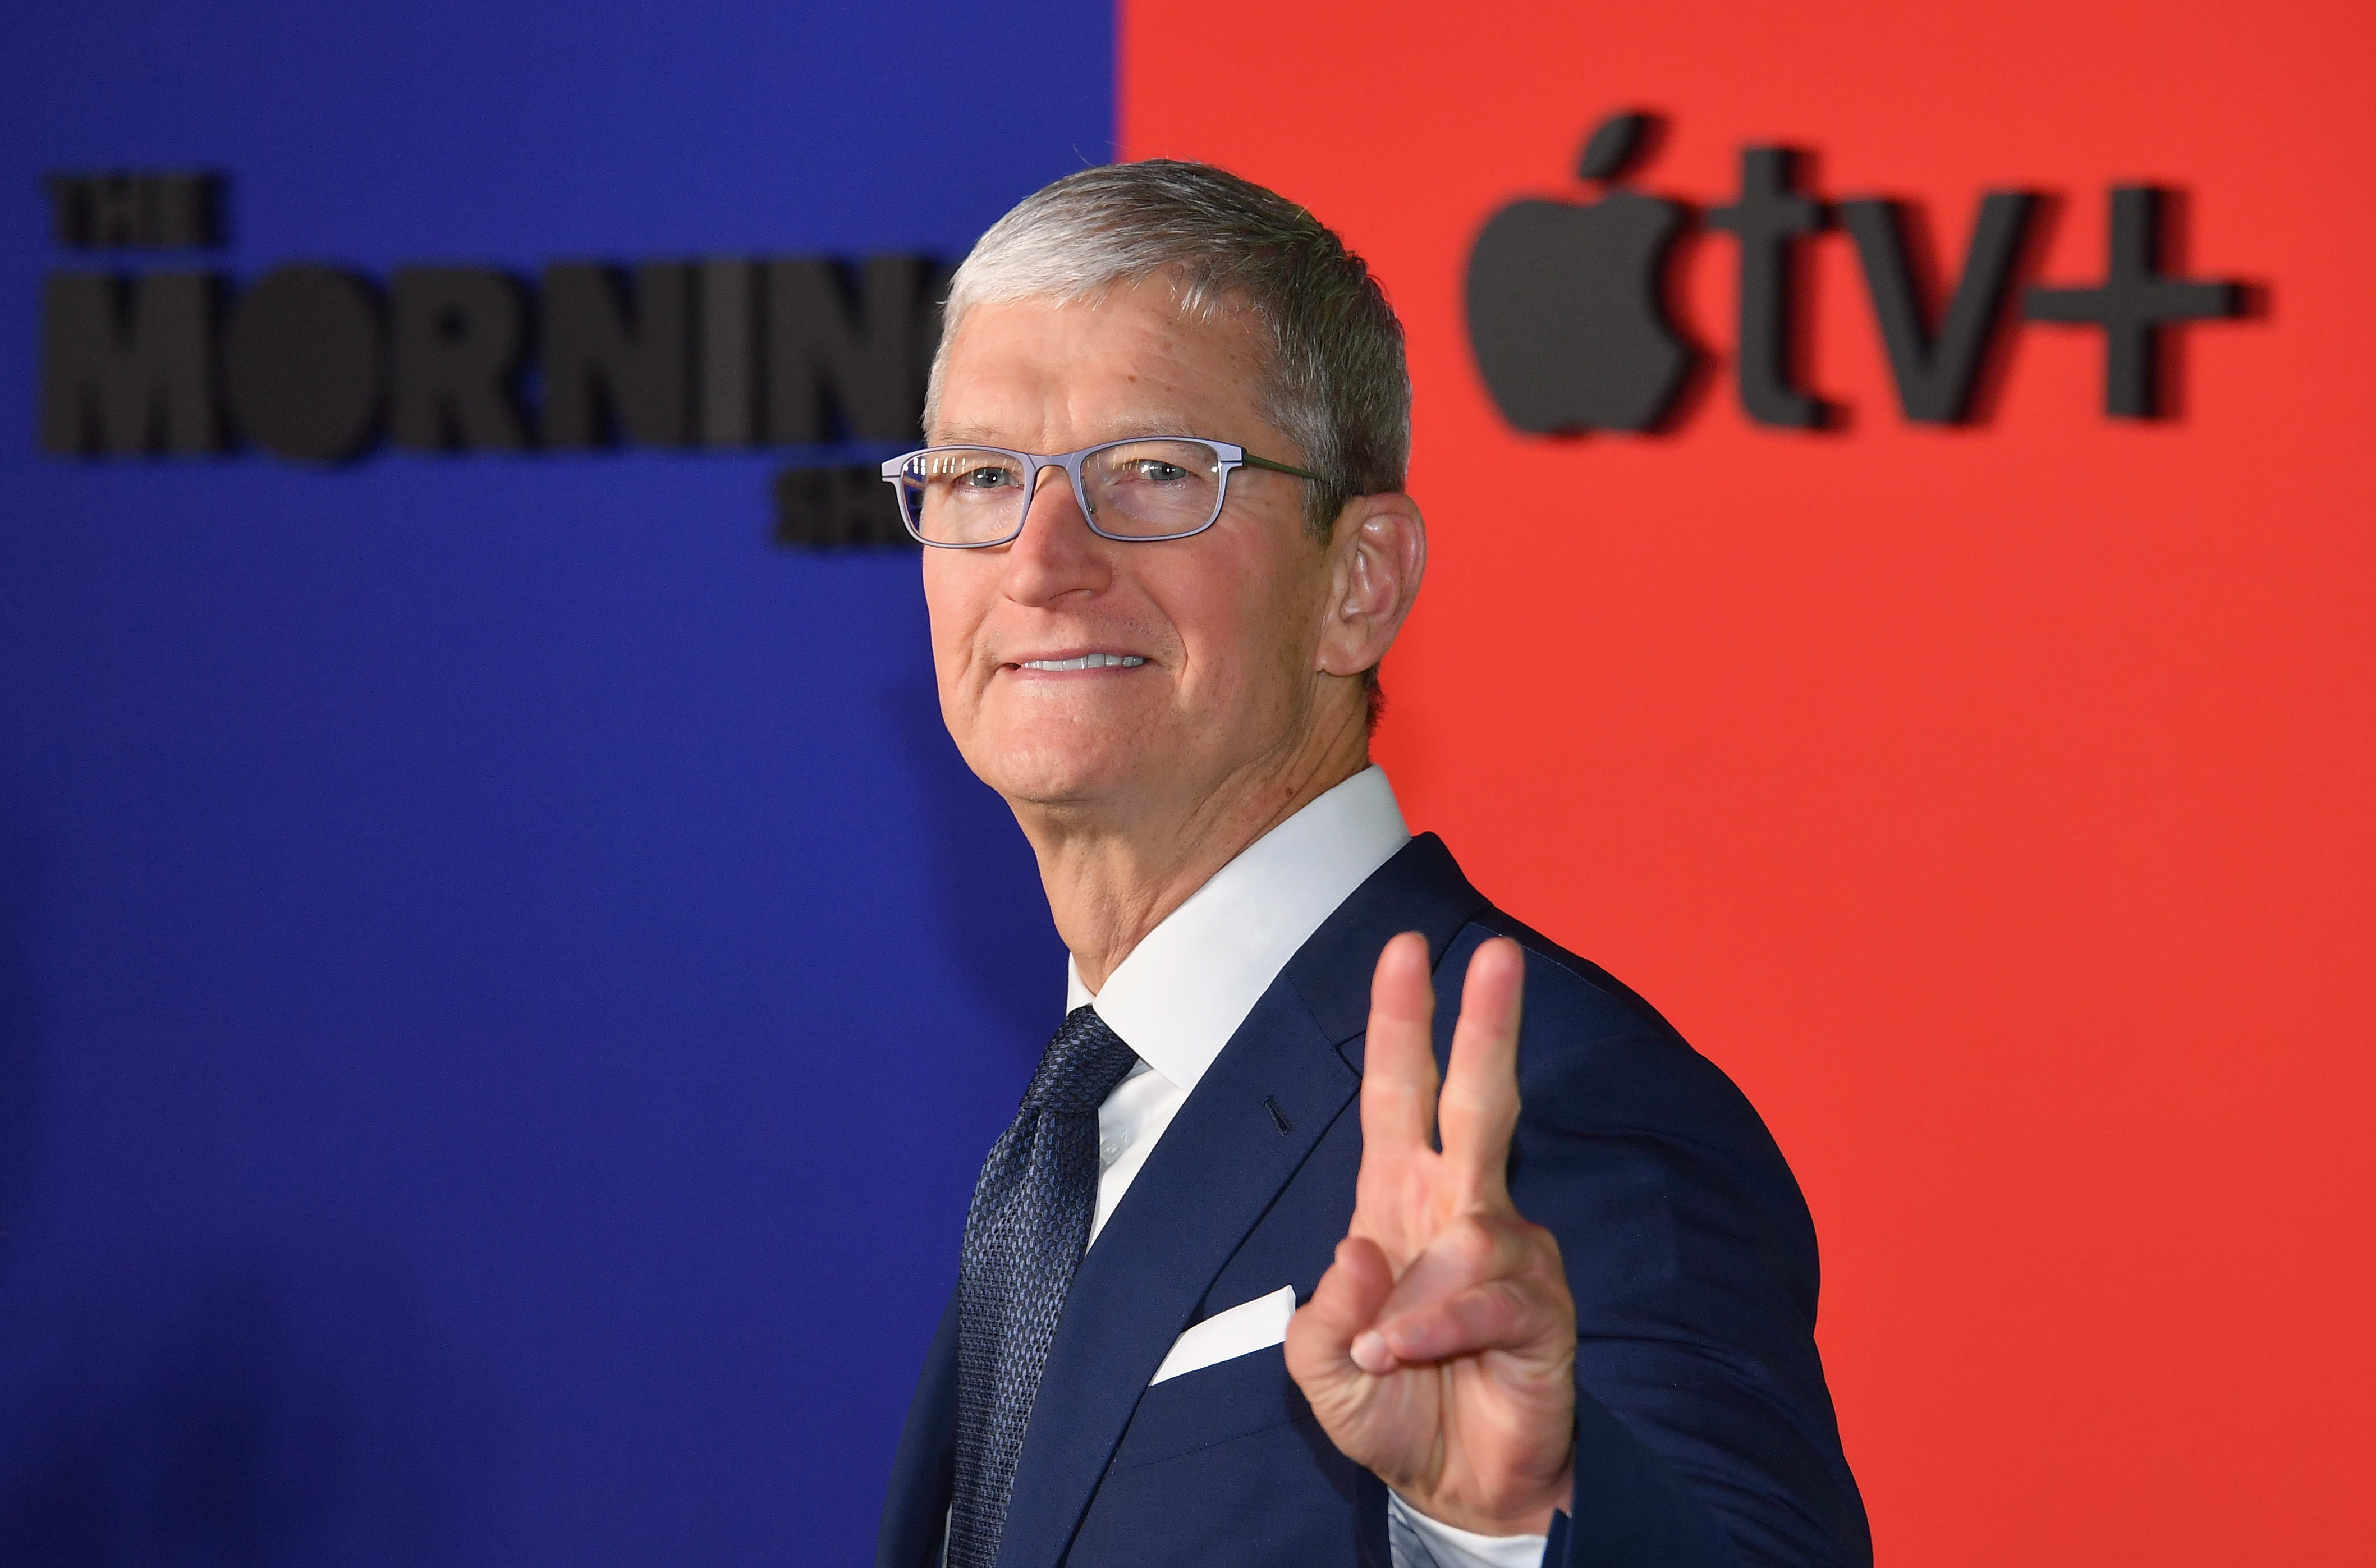 Apple is set to report earnings after the bell